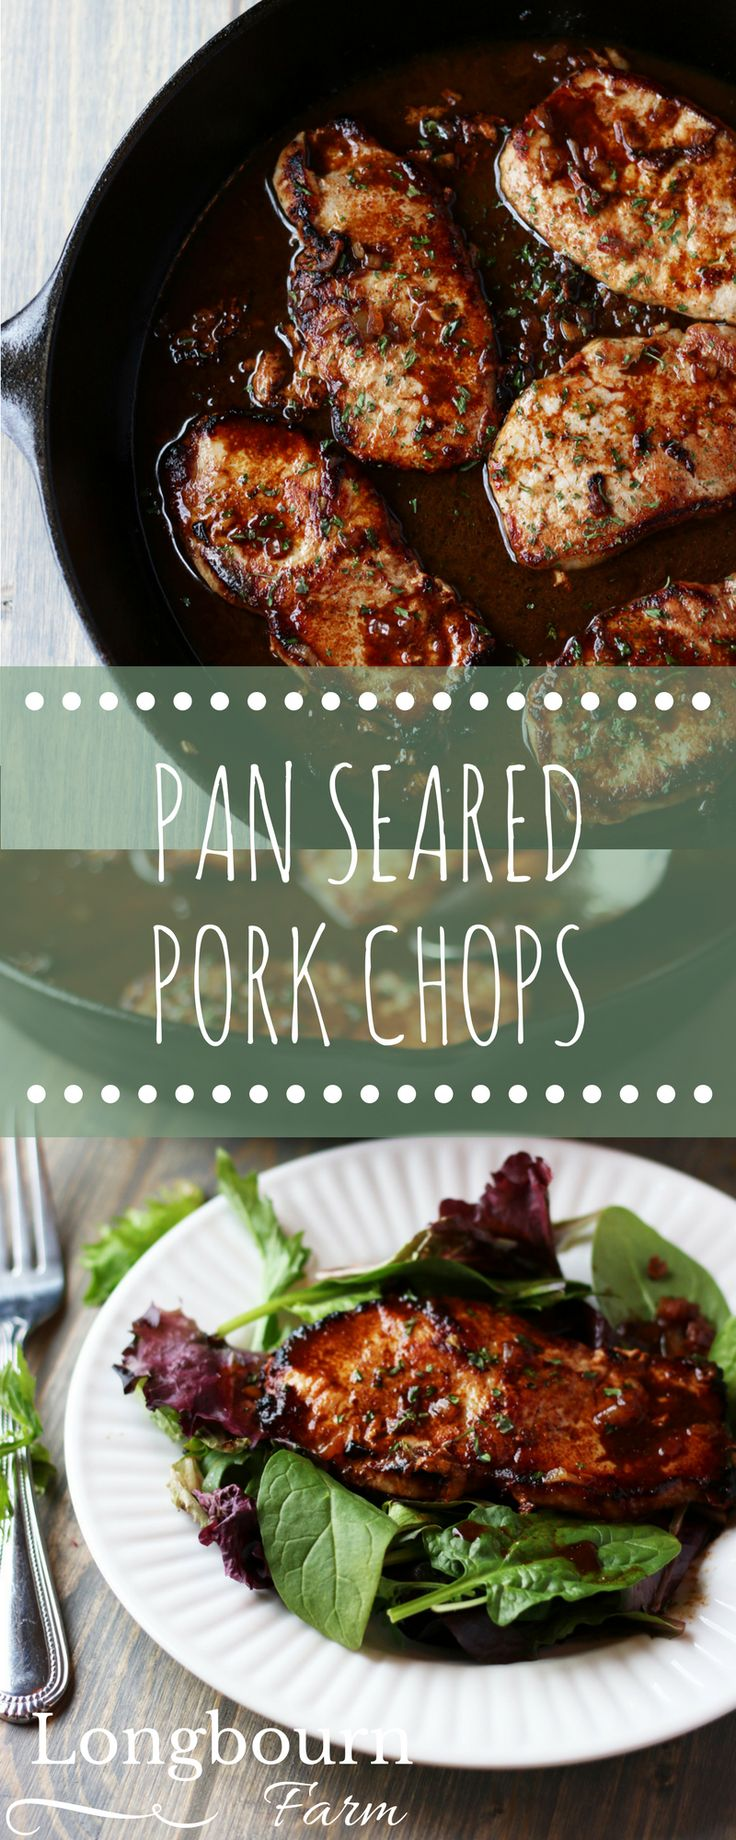 Pan seared pork chops with an incredible marinade are perfect for a quick weeknight meal. Family friendly food, delicious over salad or something else!